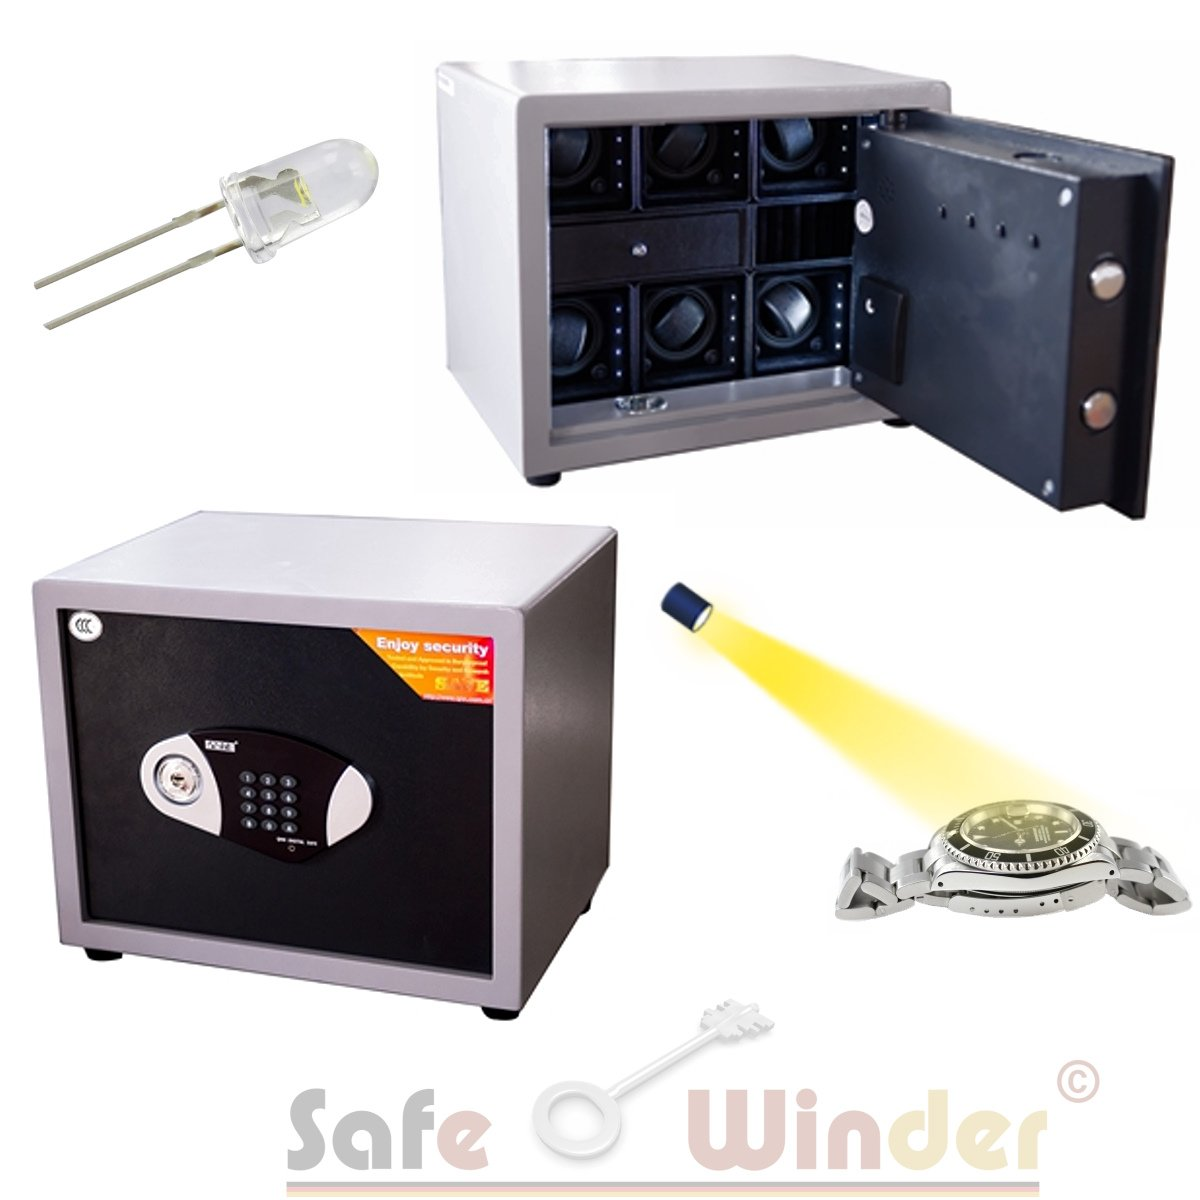 Safewinder® Type BIG 6 PLUS Uhrenbeweger & Safe